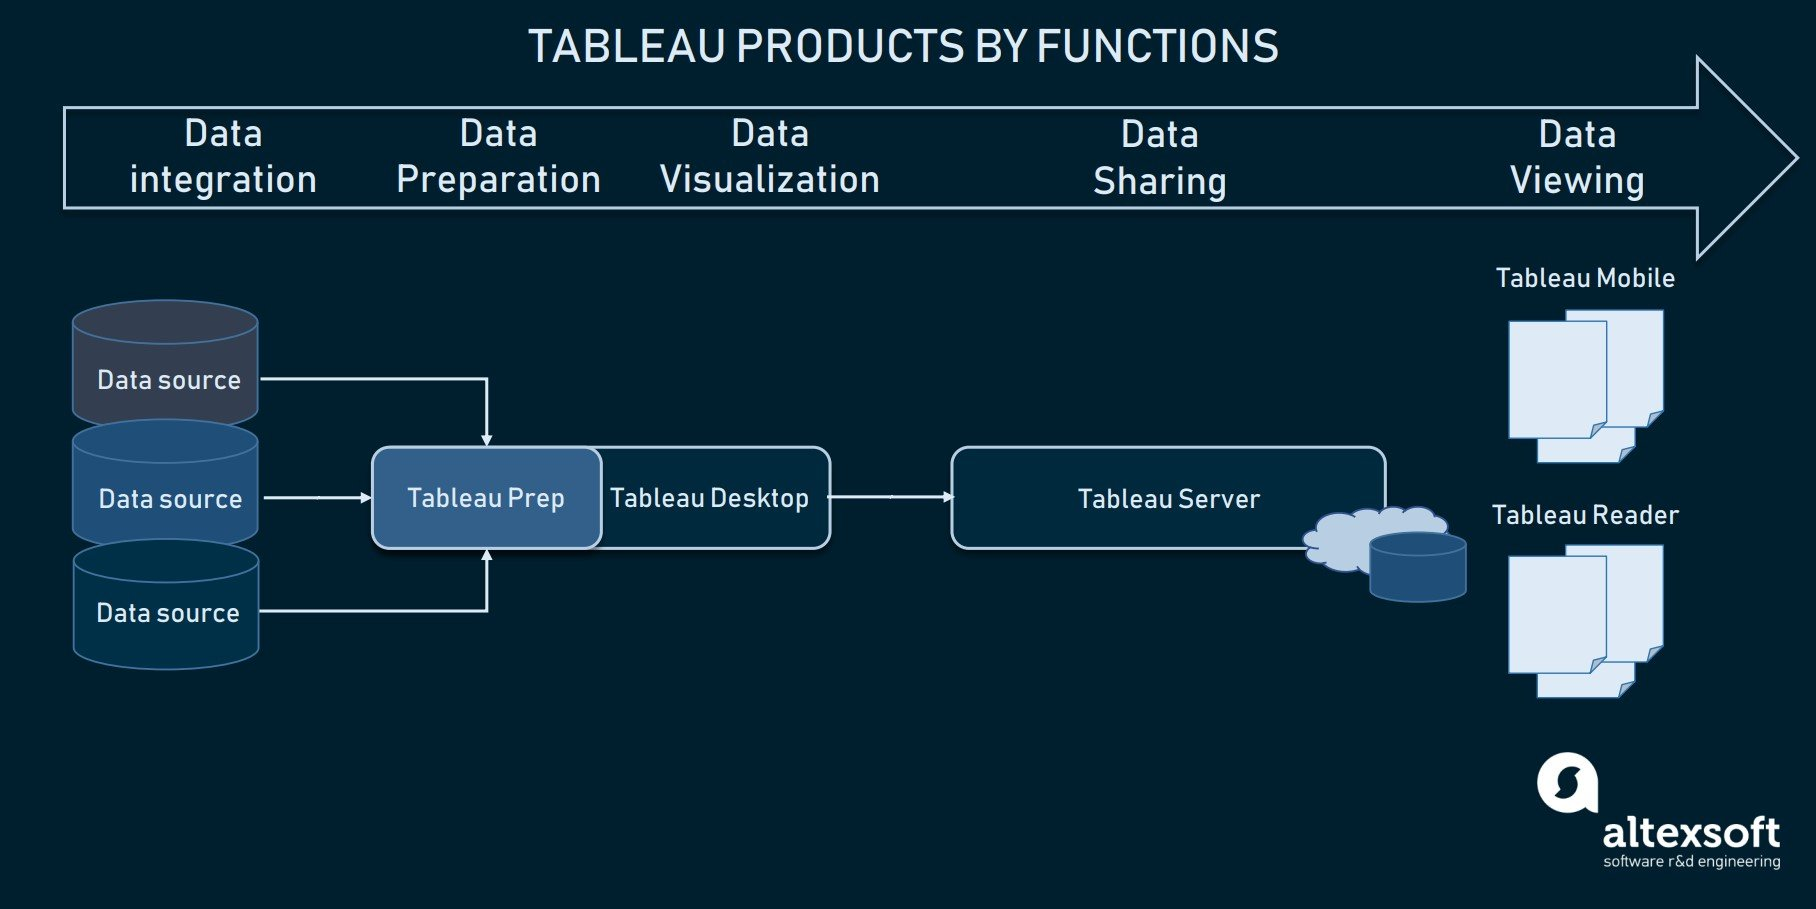 Tableau products by functions